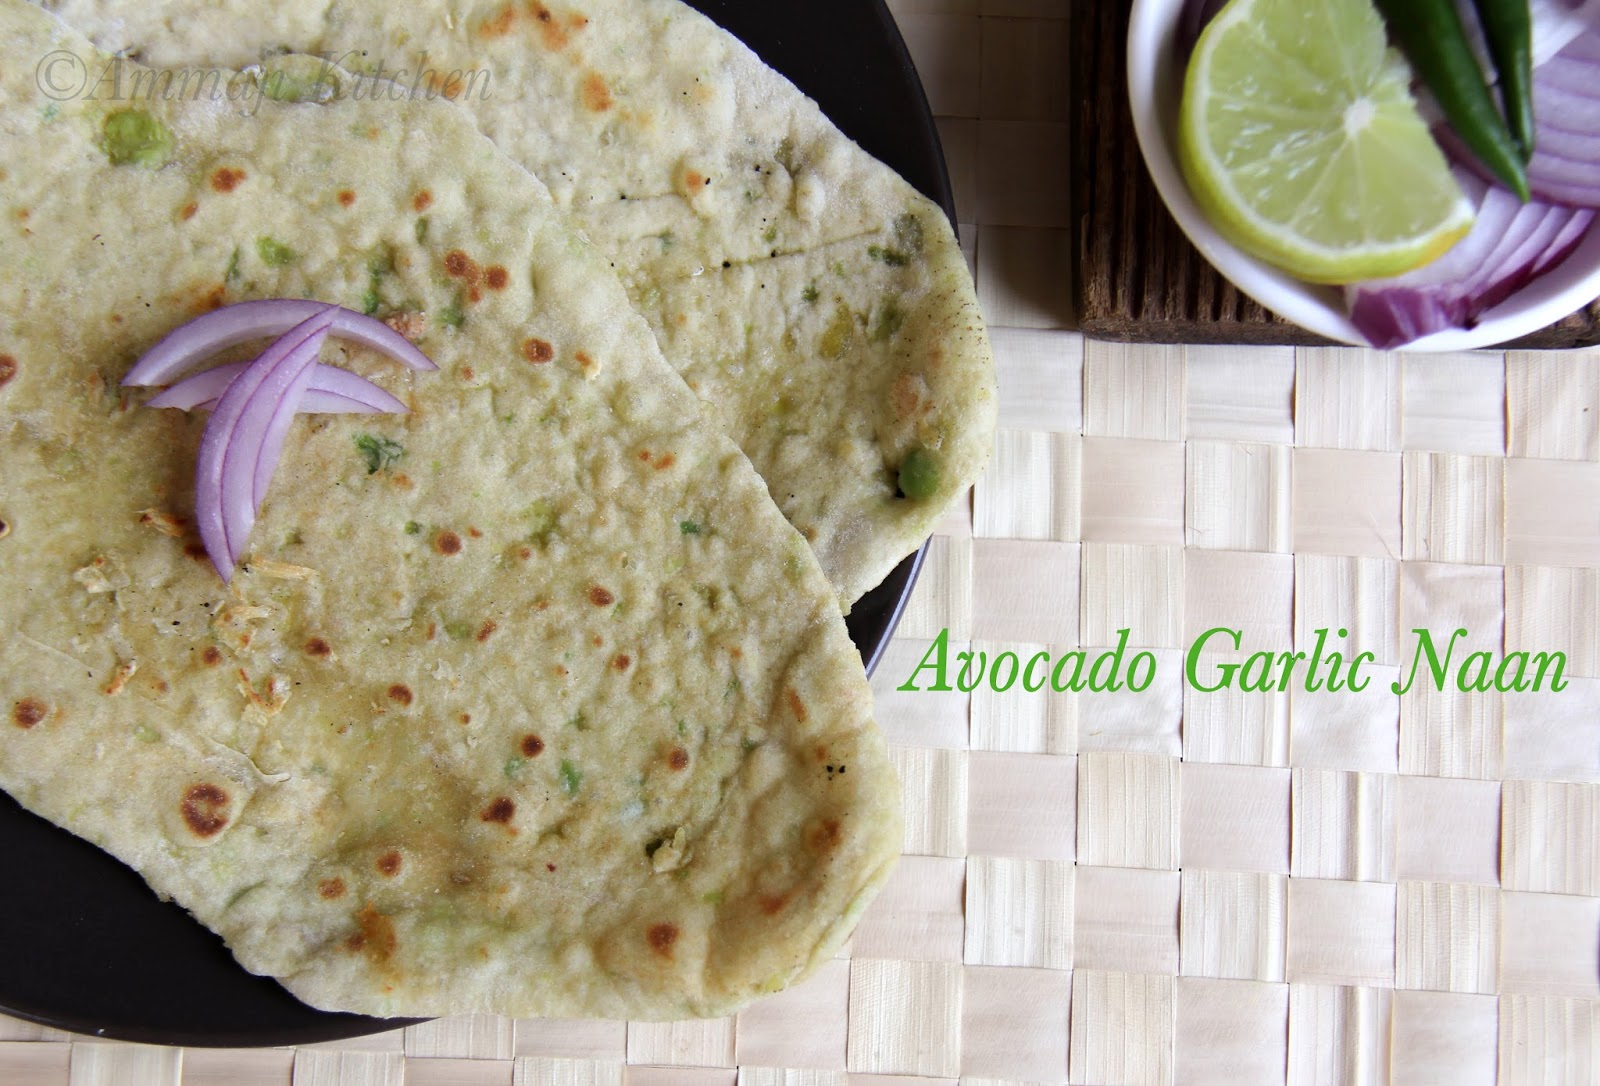 Avocado Garlic Naan